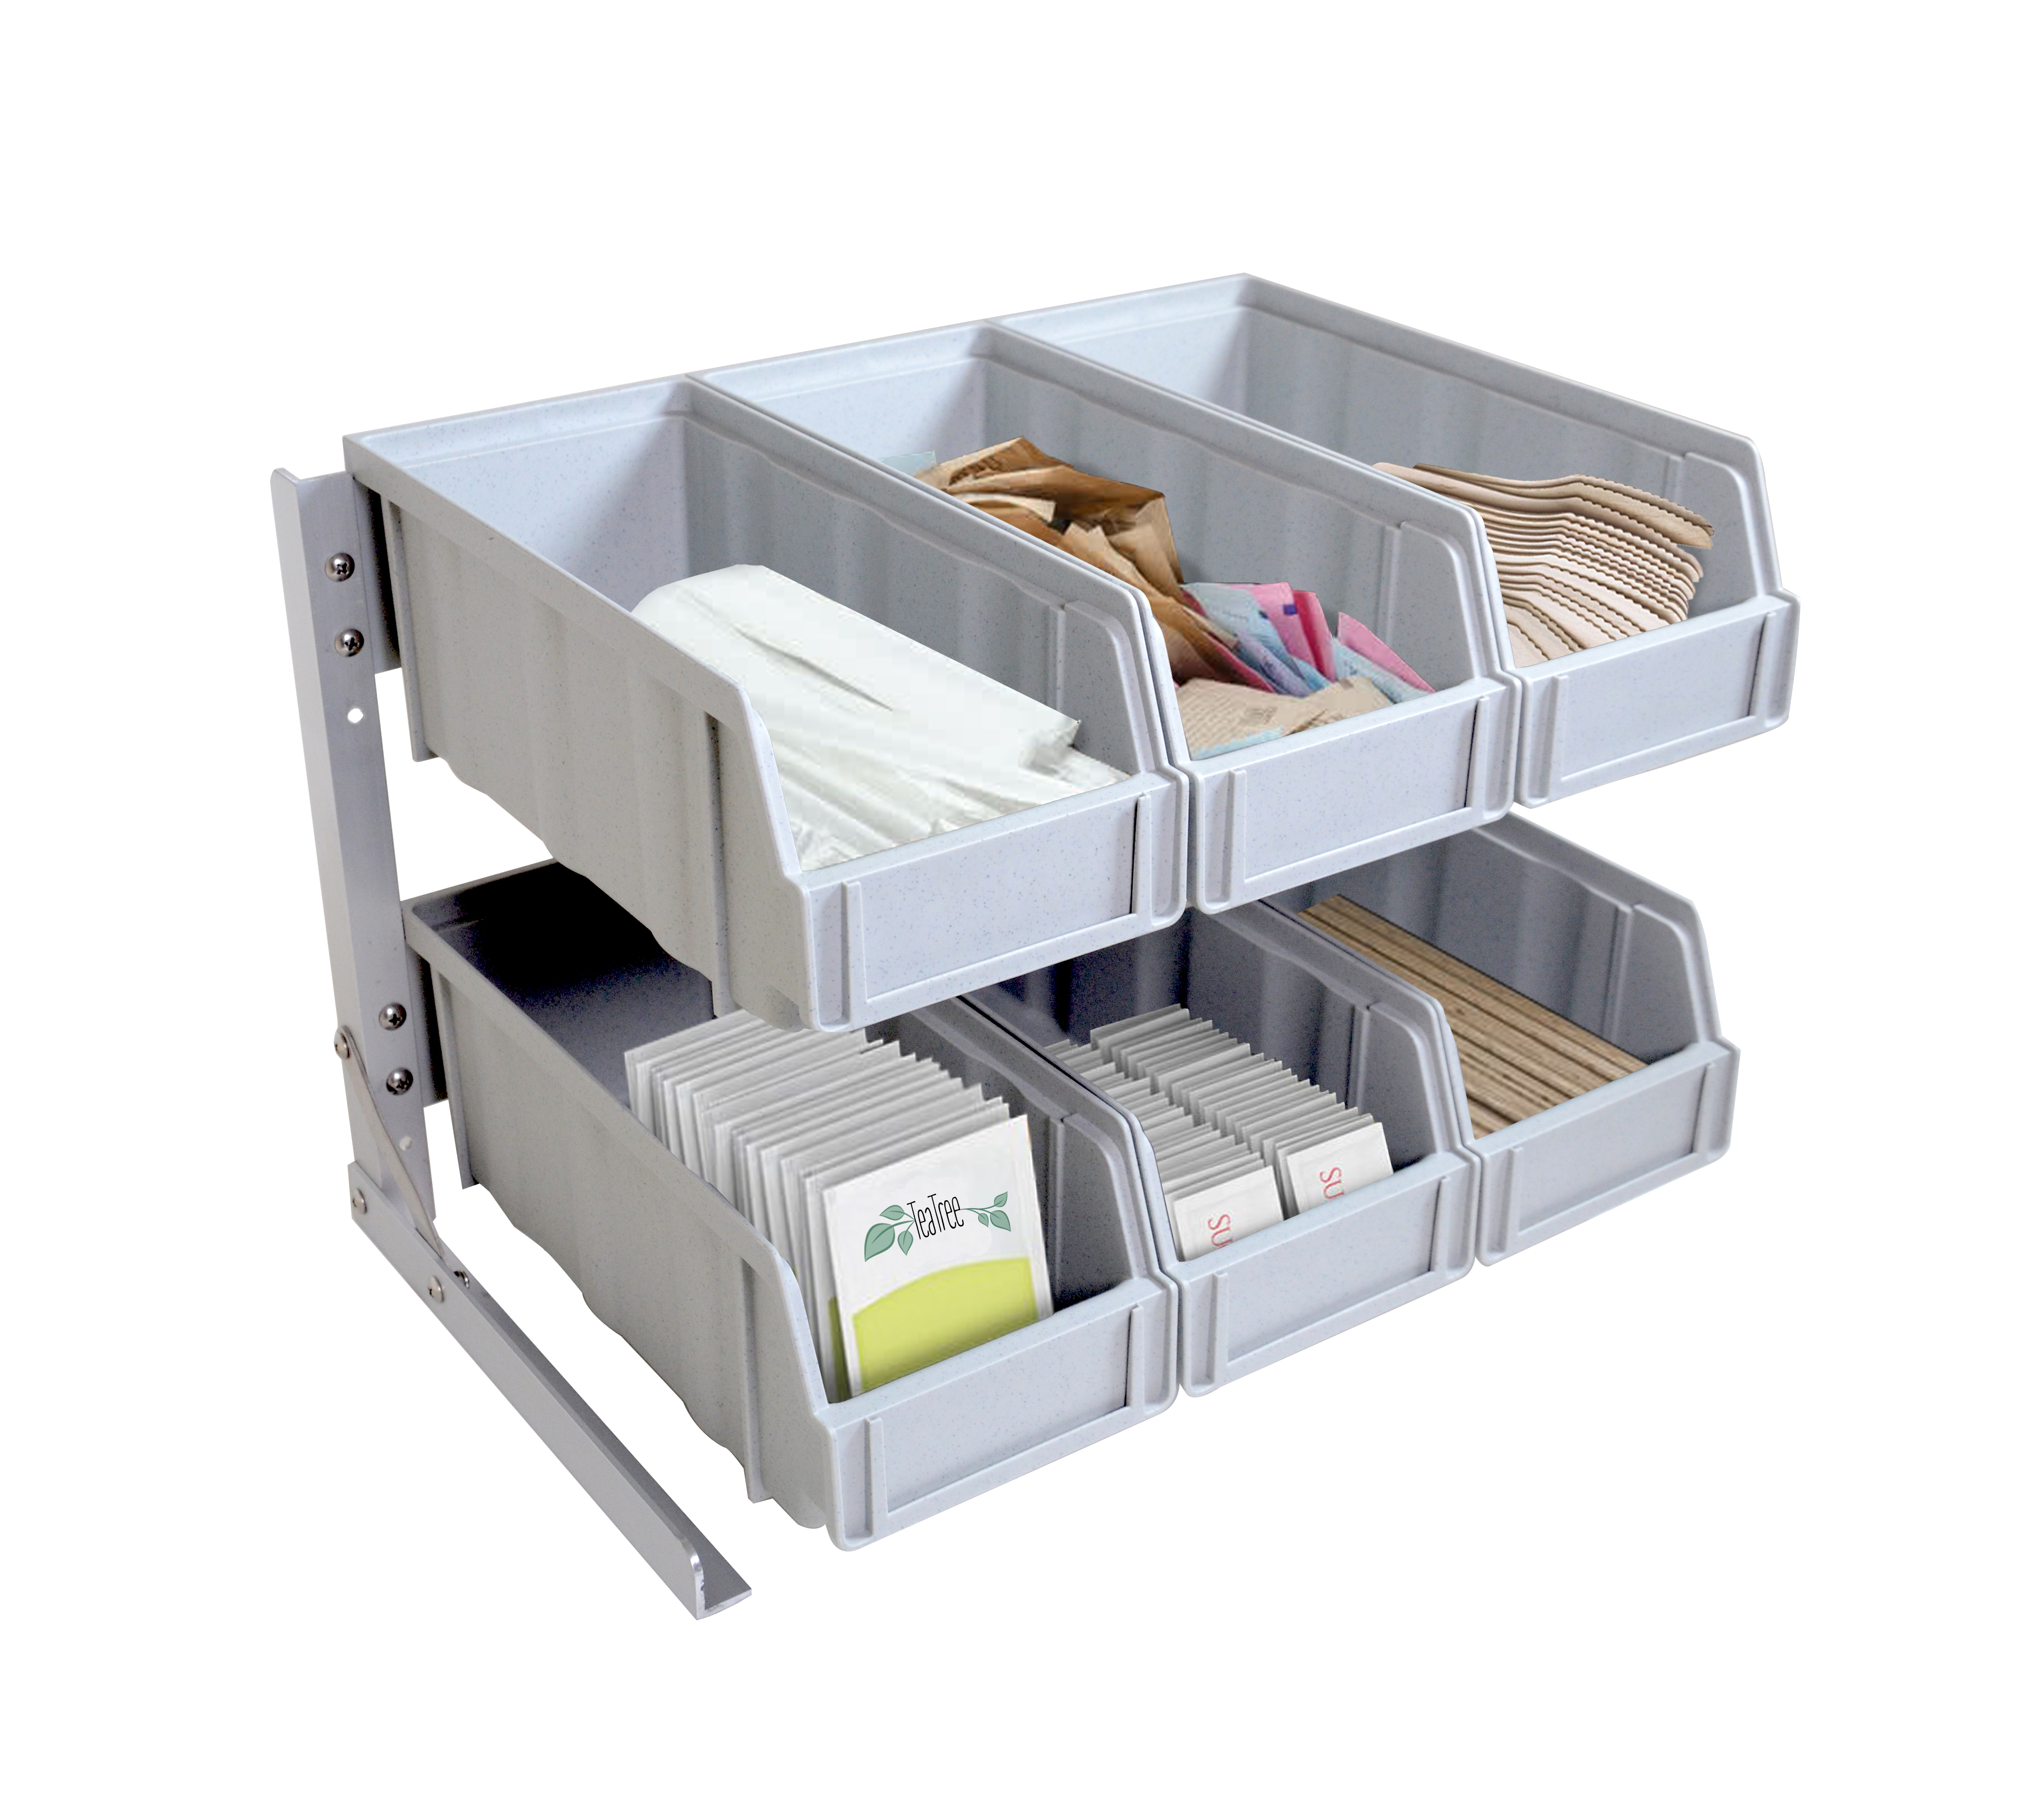 Omcan 43642 customer convenience > plastic condiment organizer